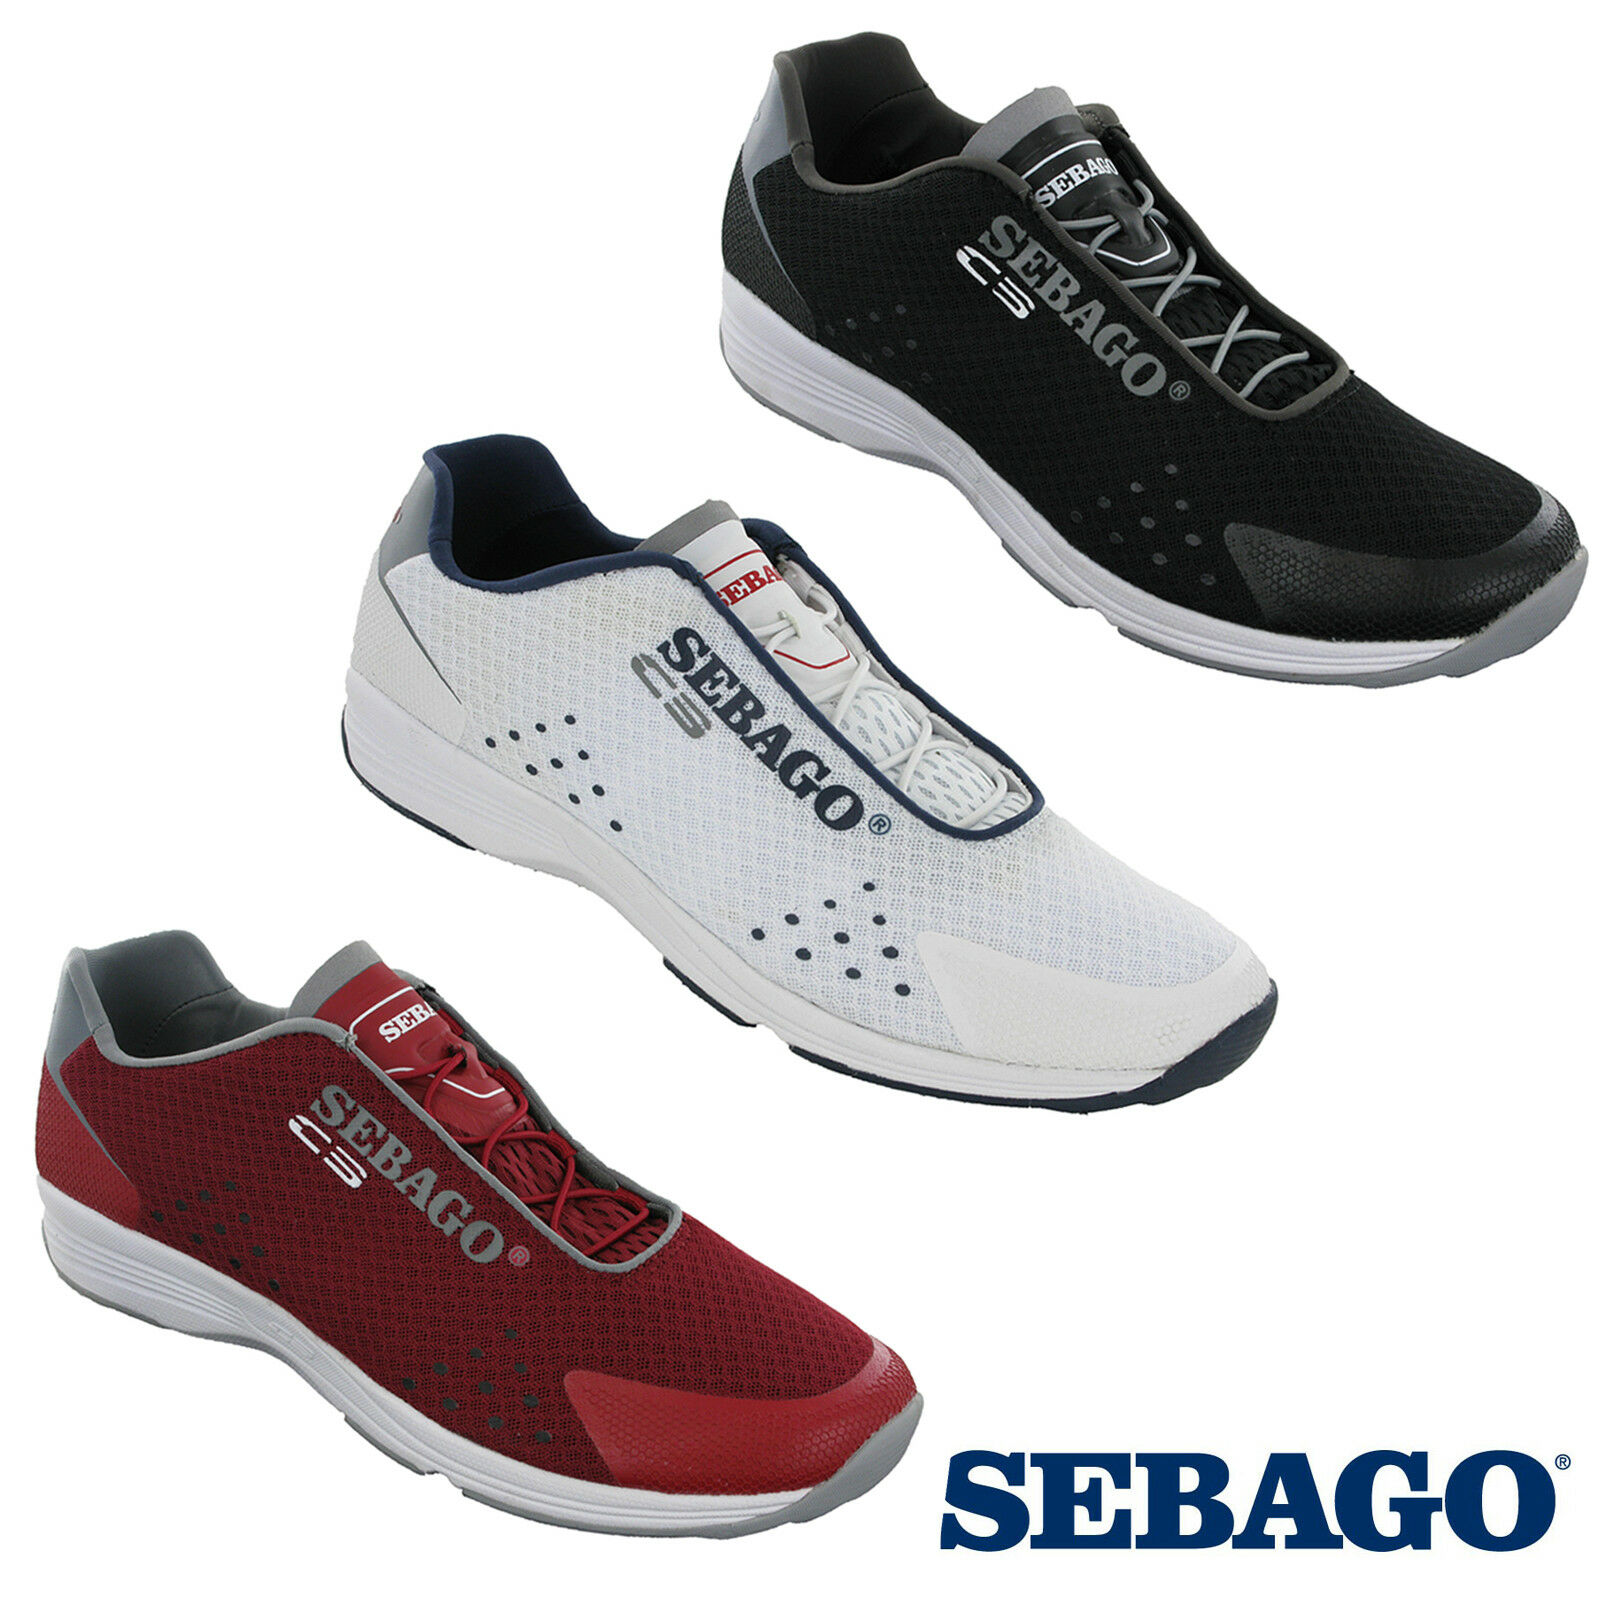 3b44329182ed Sebago Cyphon Sea Sport Mens Slip On Mesh Sports Fitness Running Trainers  Shoes